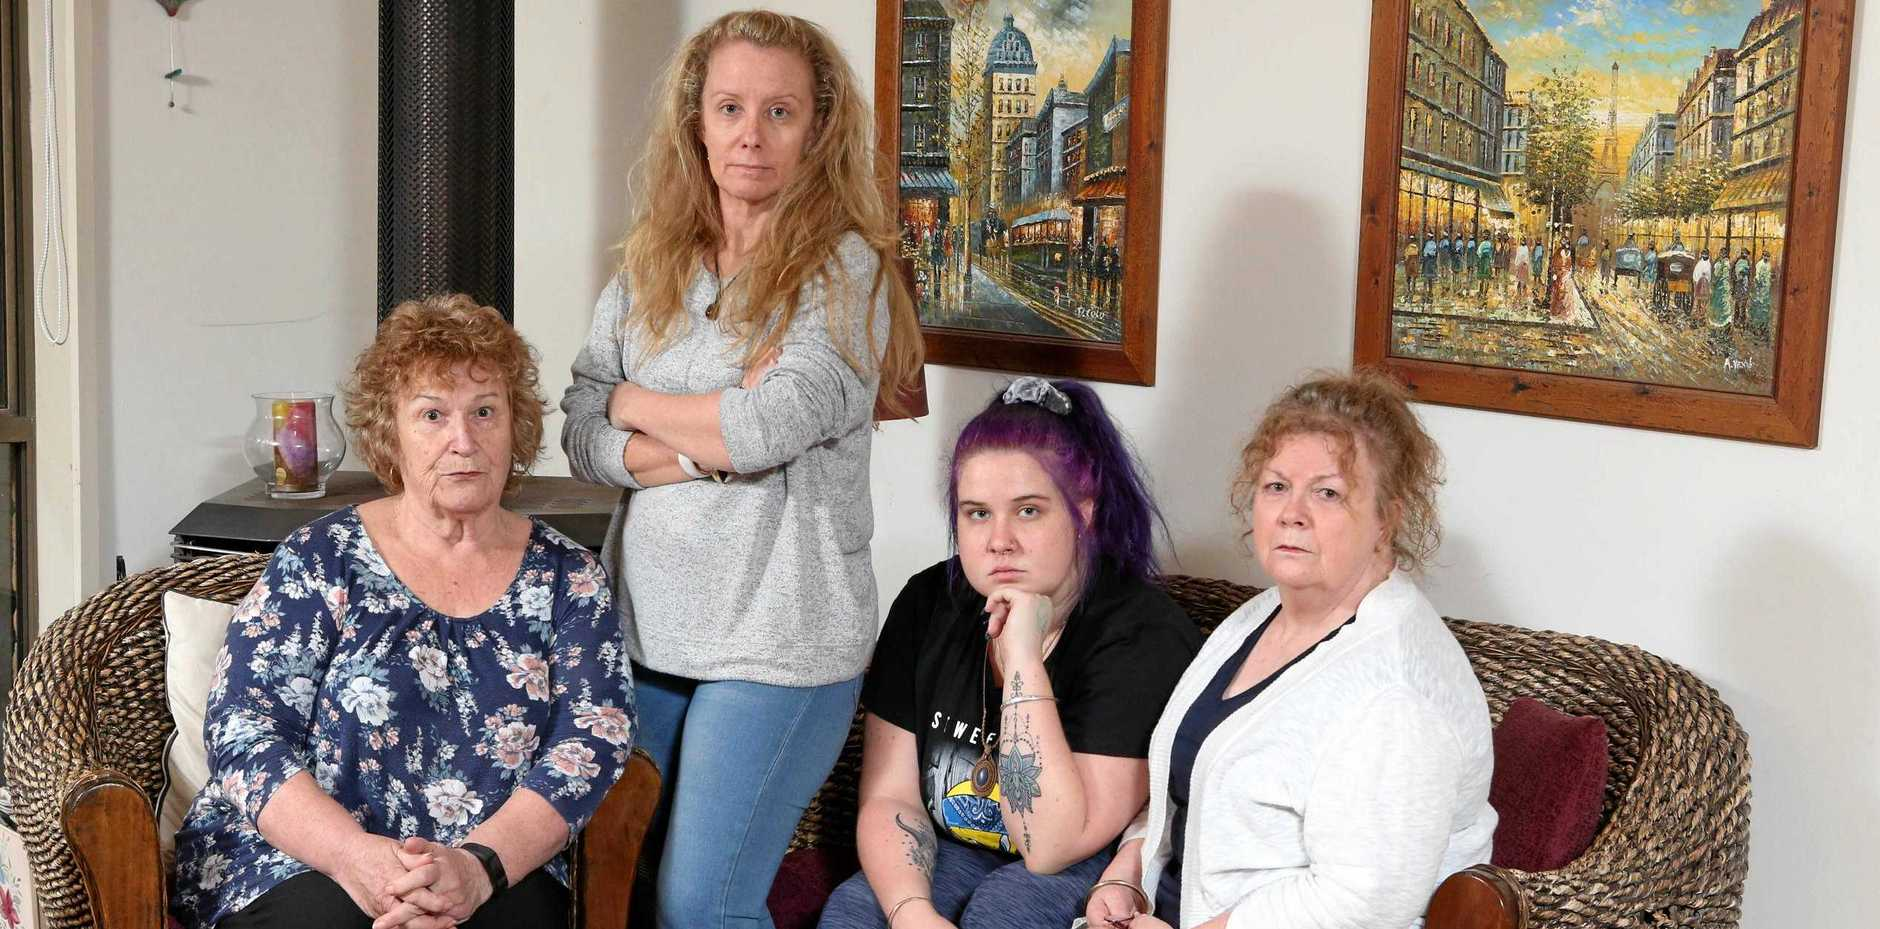 Holiday makers were terrified when eight people became trapped in an elevator during their stay at a Sunshine Coast hotel. Among them were Gold Coast family (L-R) Vivian Woods, Sharlene Hall, Reannah Hall and Jennifer Chilver.